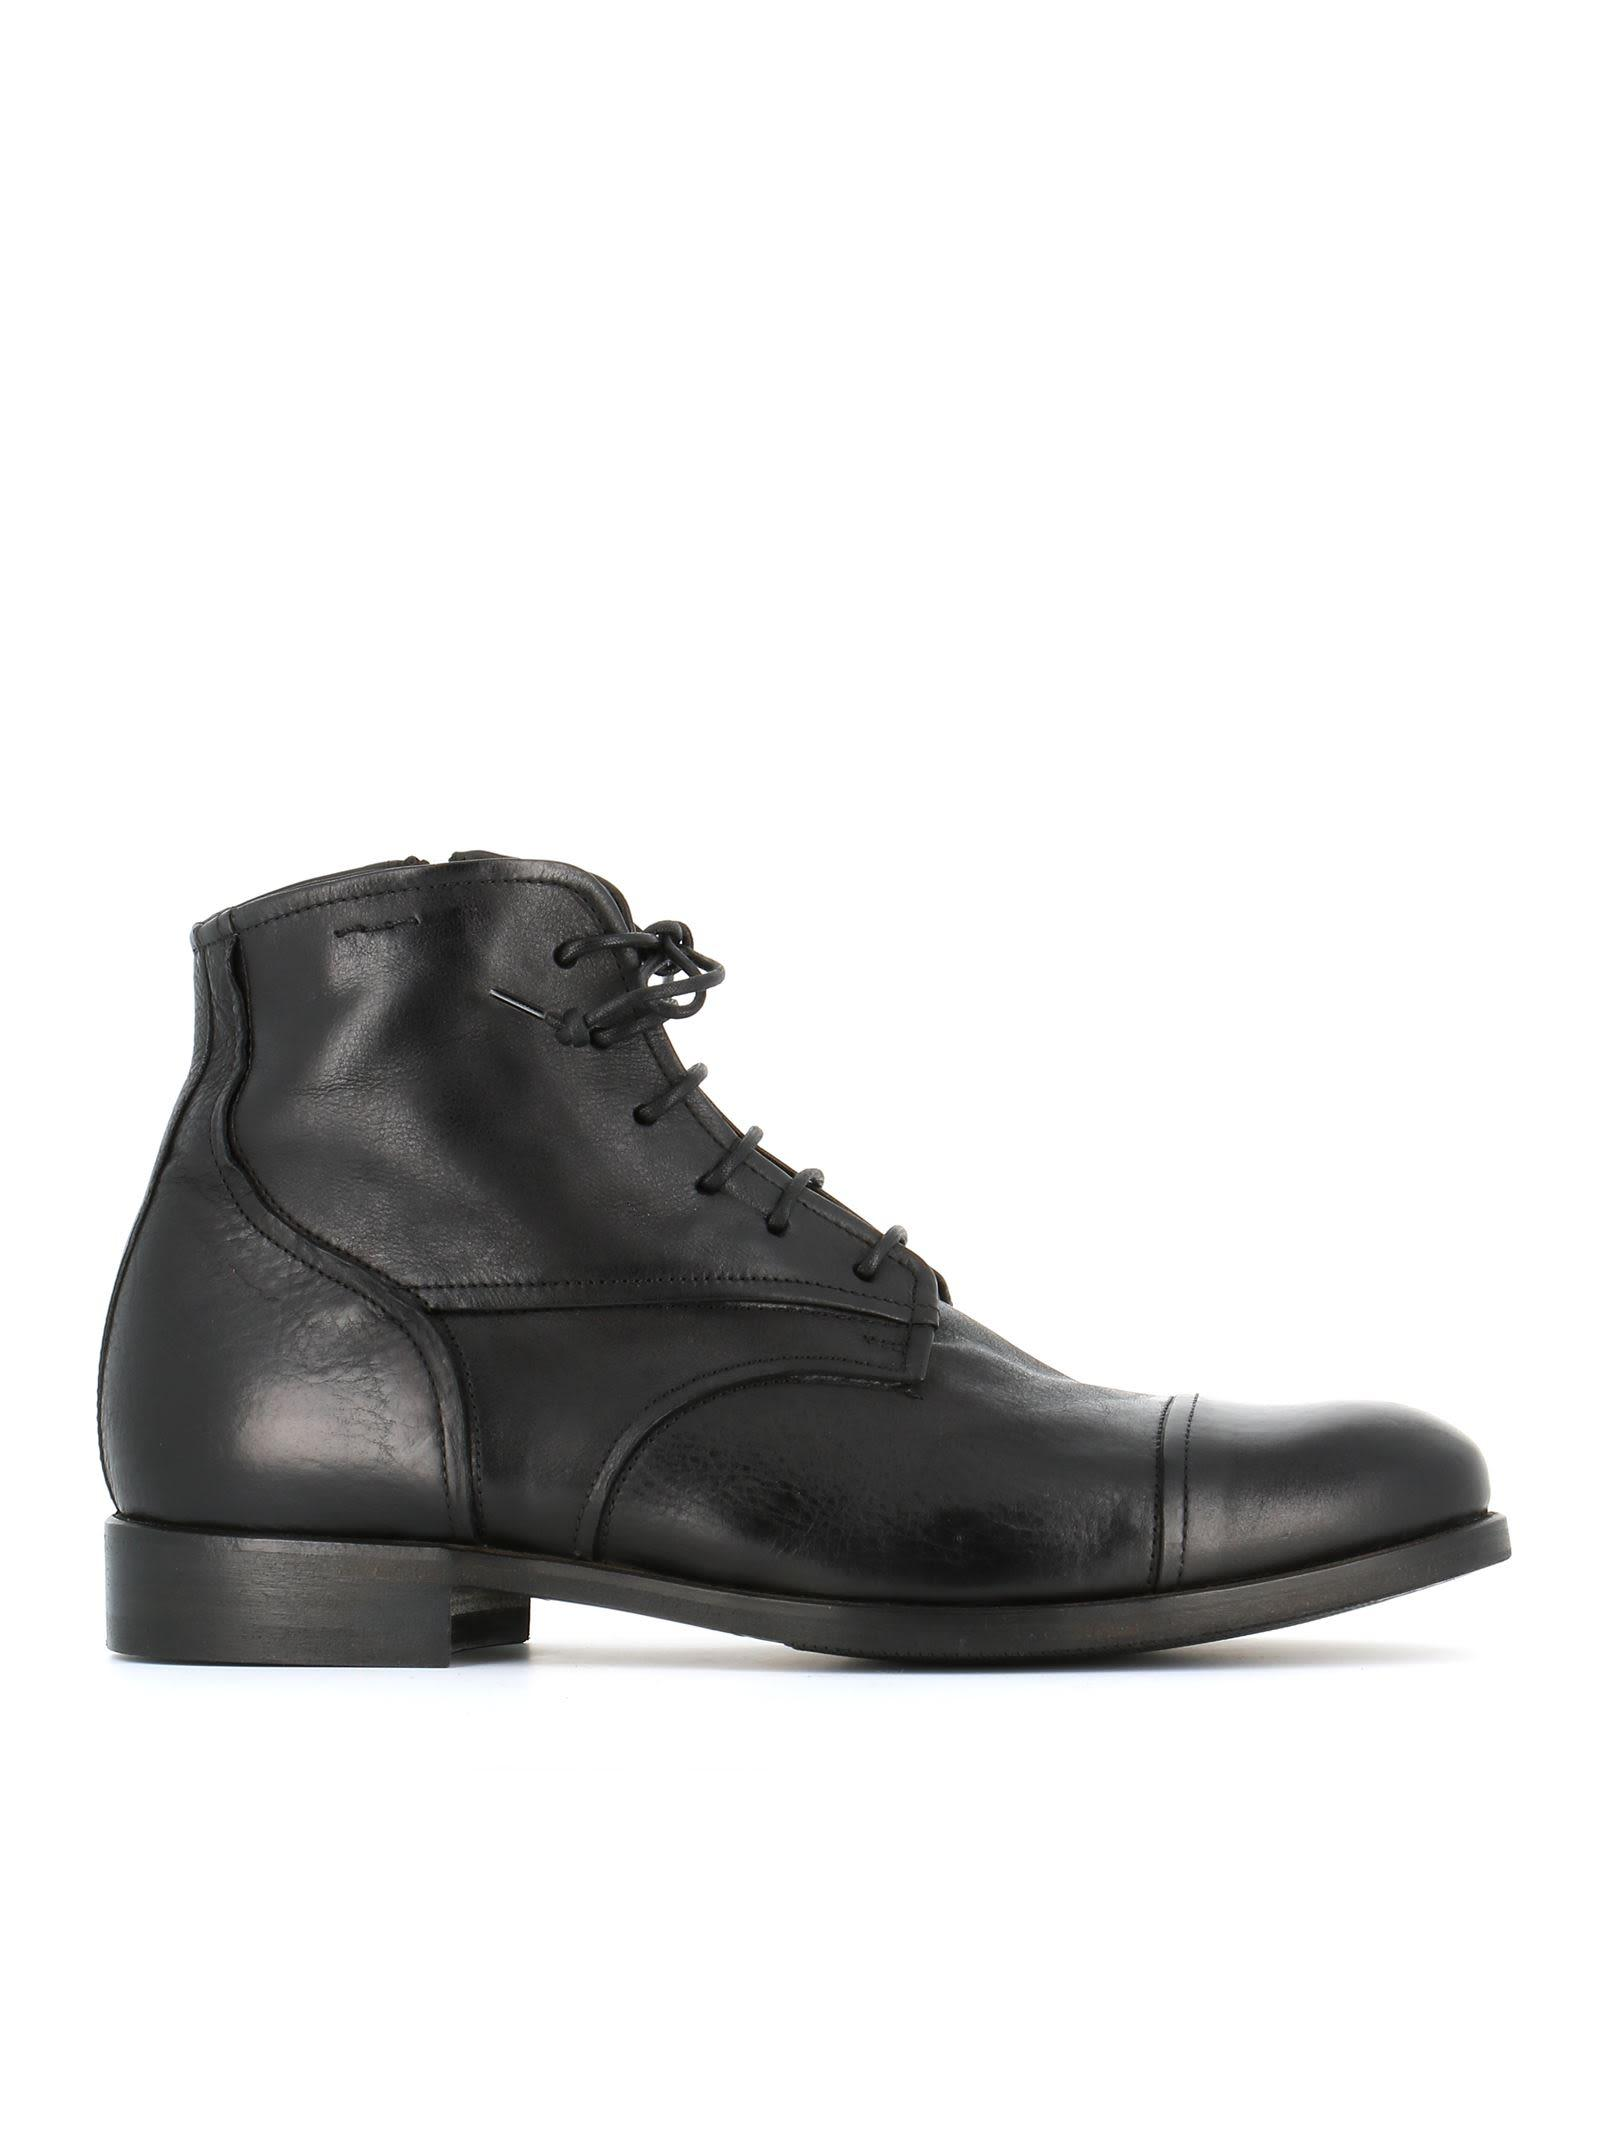 Alexander Hotto Lace-up Boots In Black